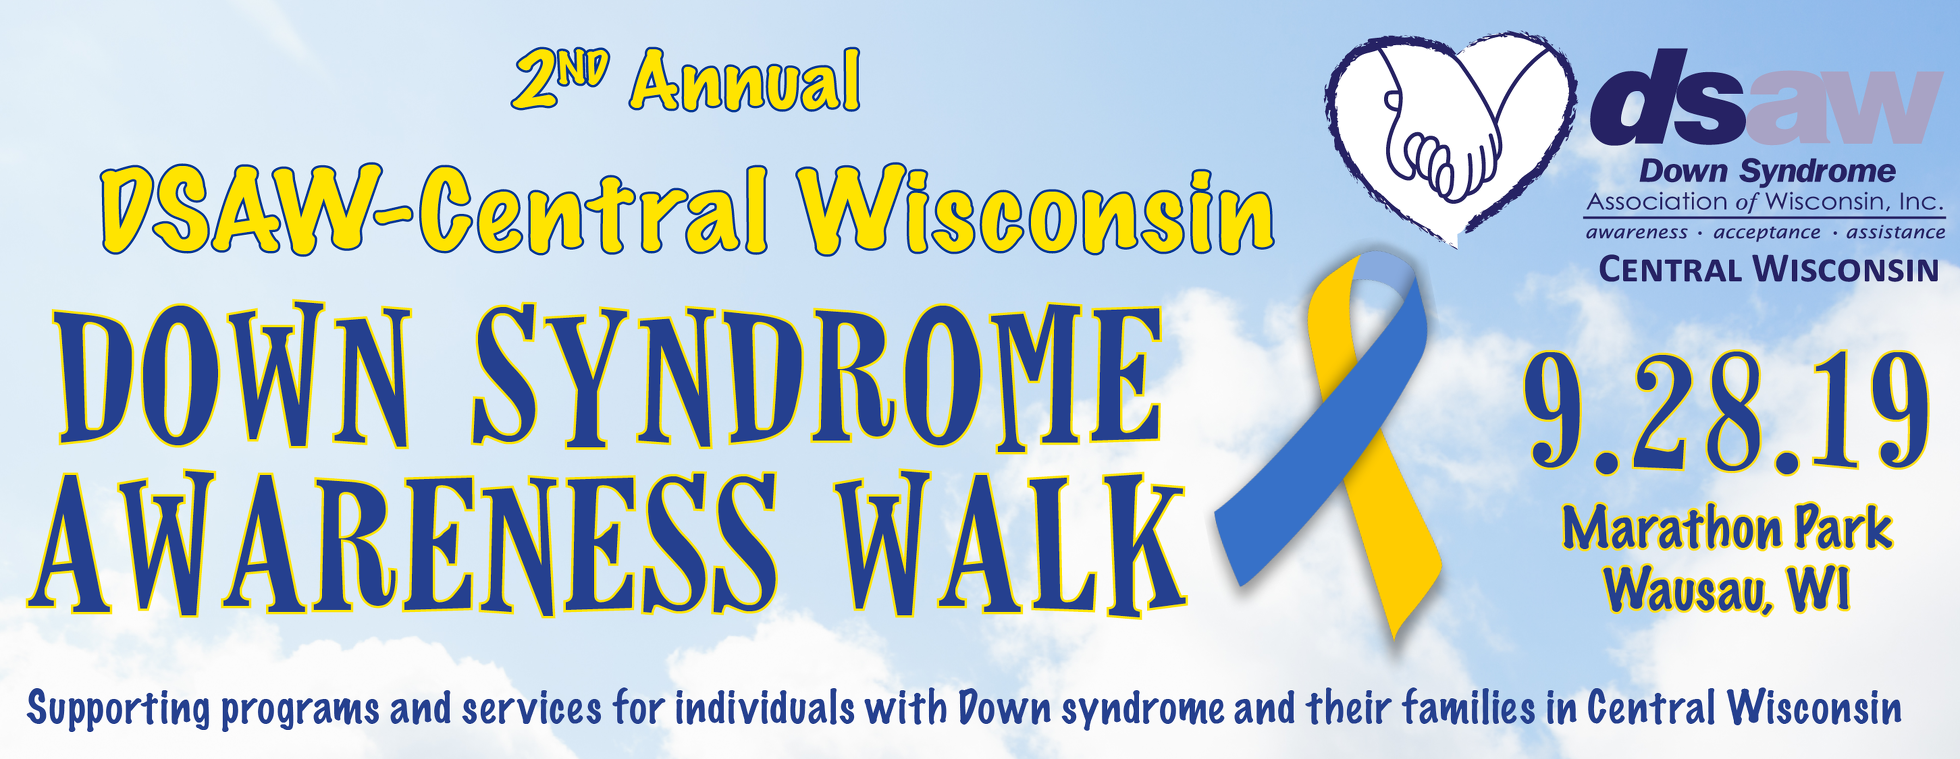 Central Wisconsin Down Syndrome Awareness Walk 2019